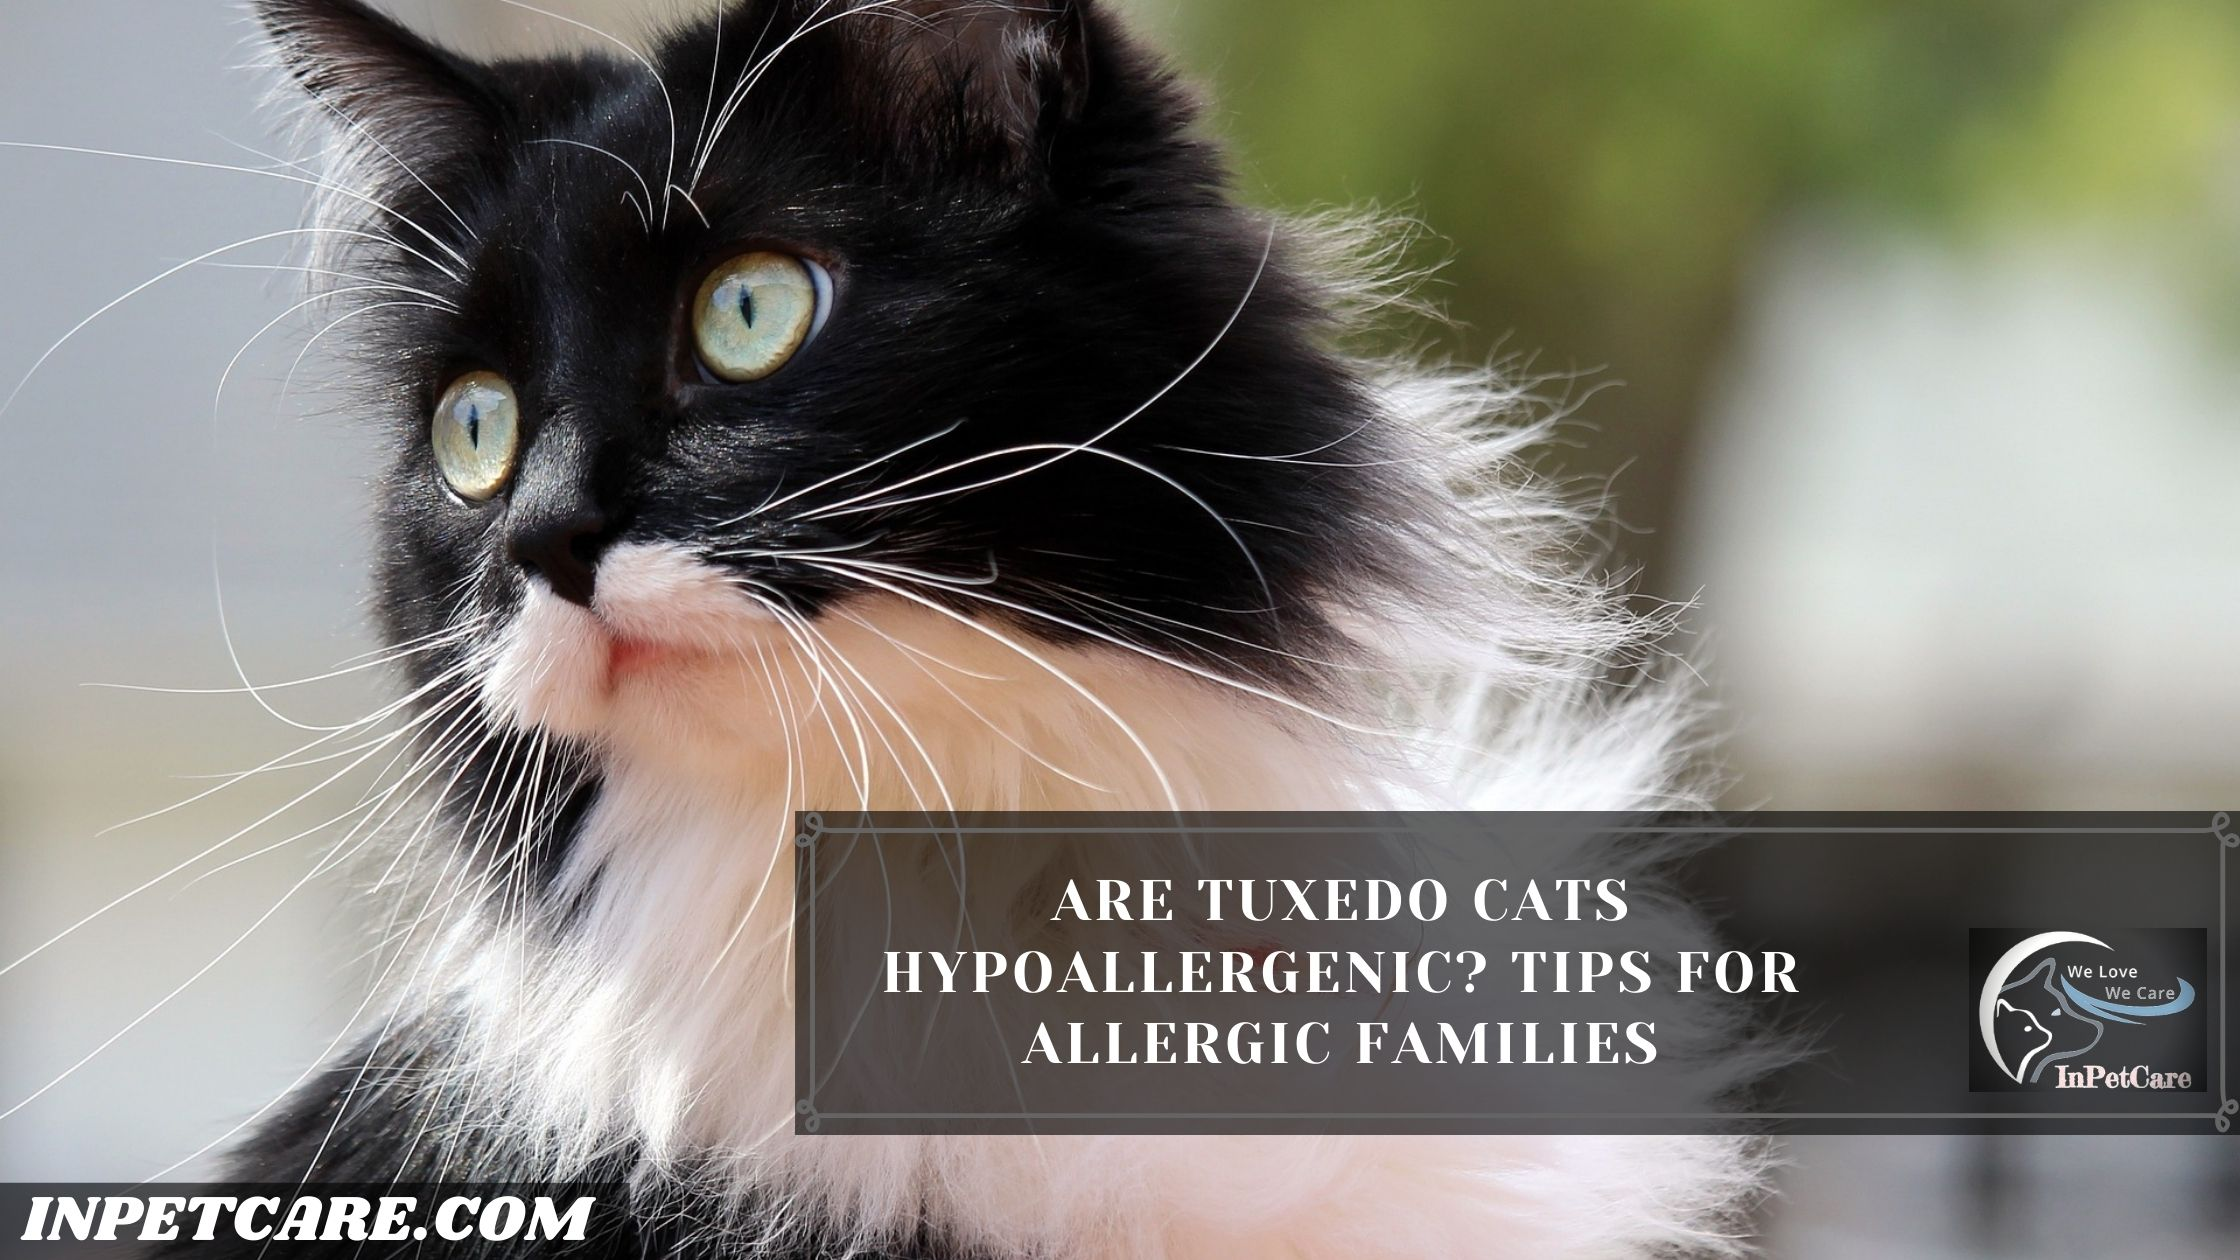 Are Tuxedo Cats Hypoallergenic? Tips For Allergic Families